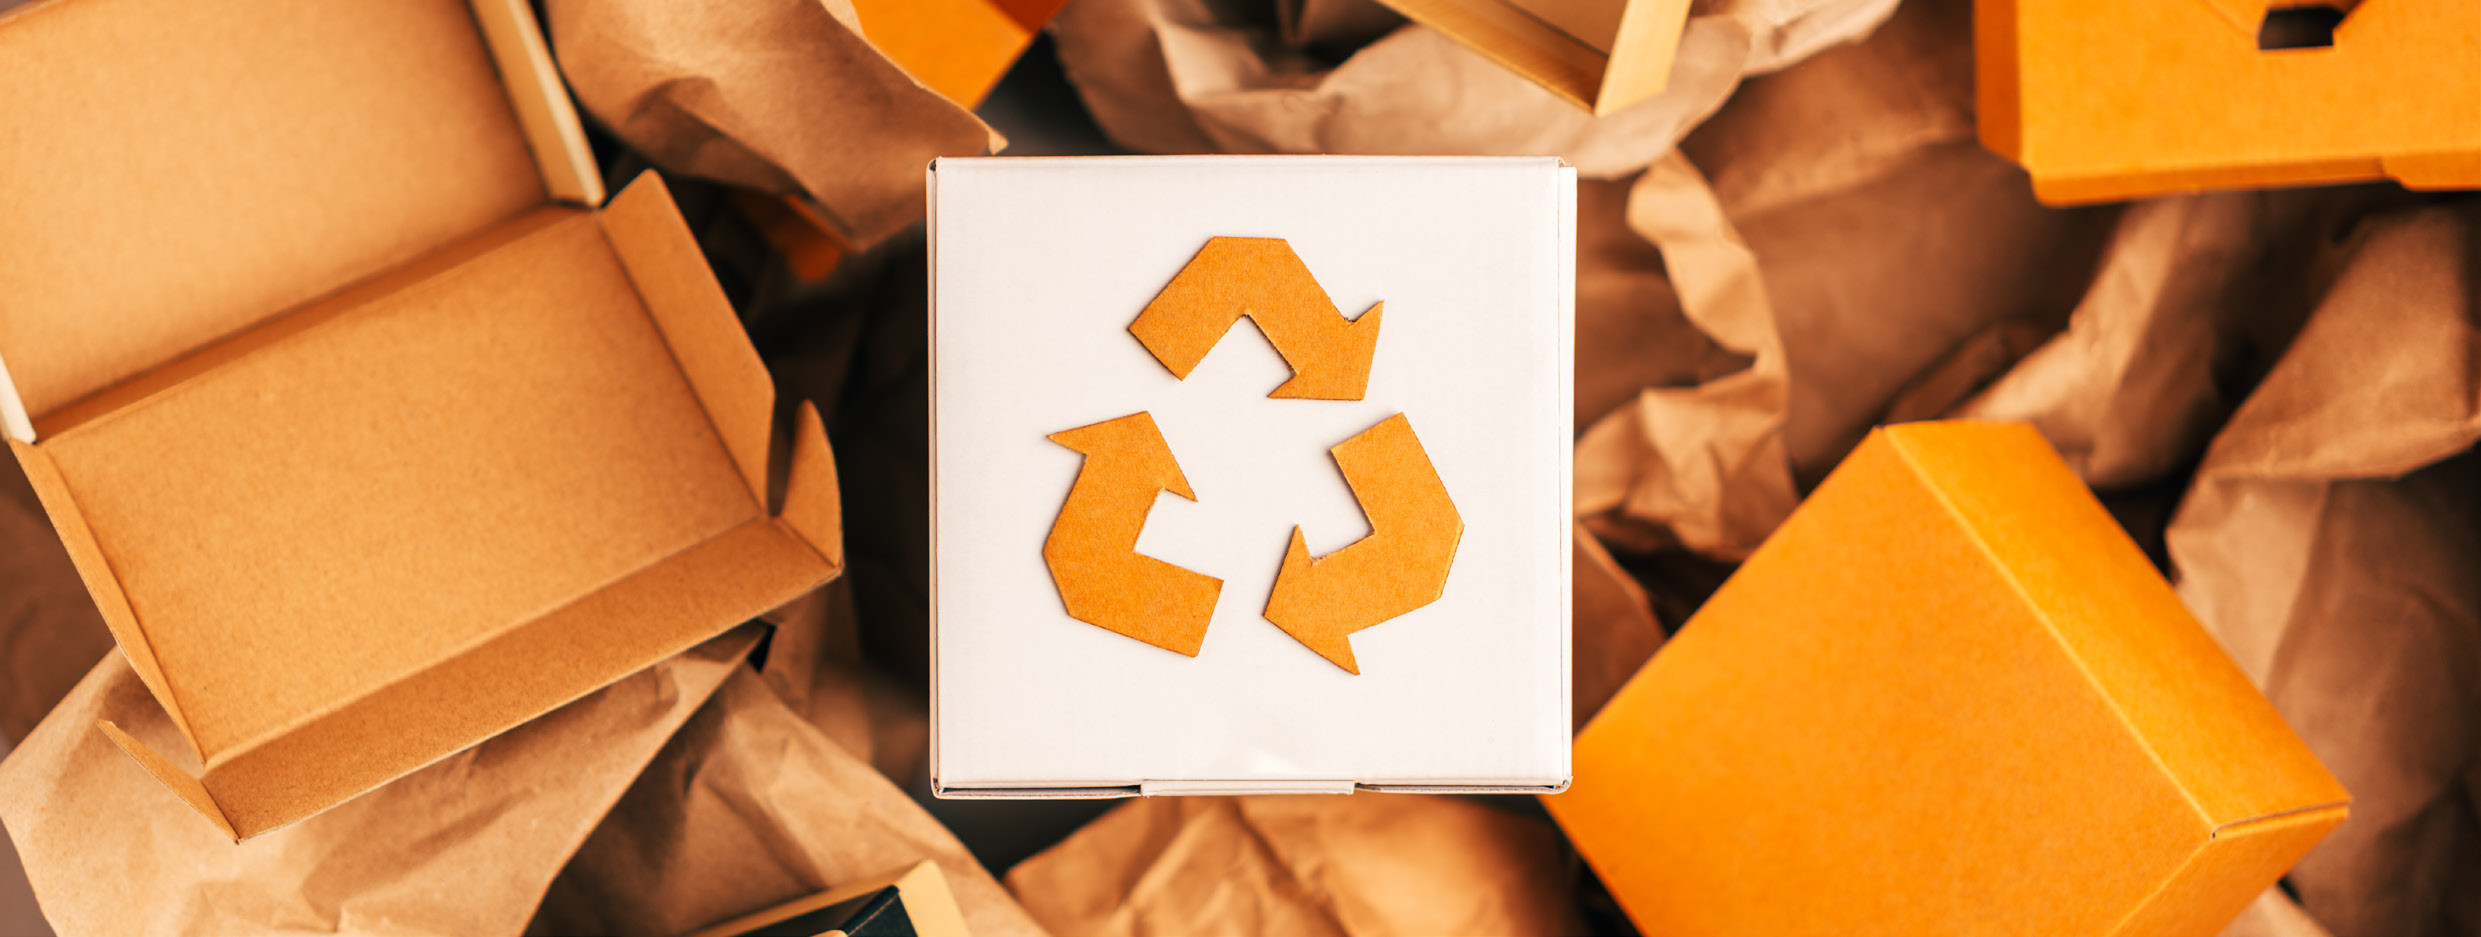 The New Packaging EPR Scheme: Why do we need it?